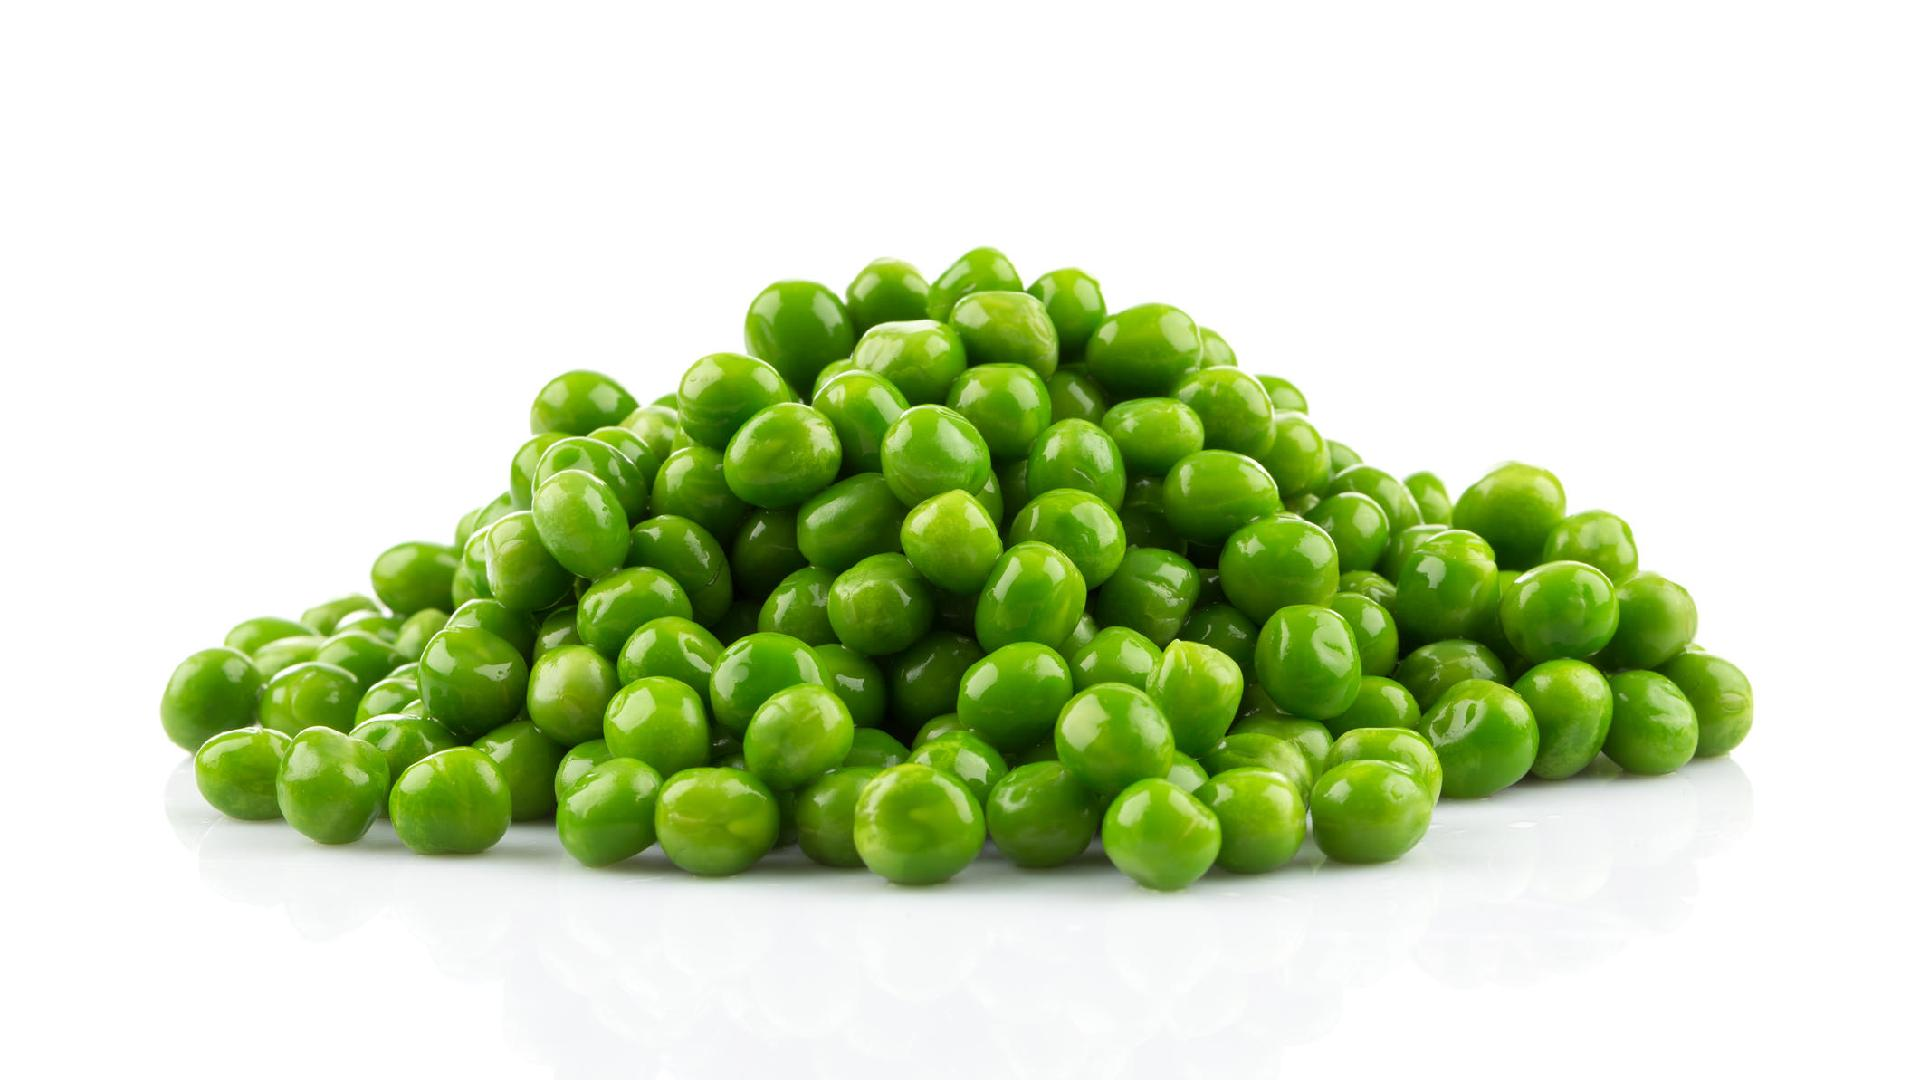 How to cook peas 1